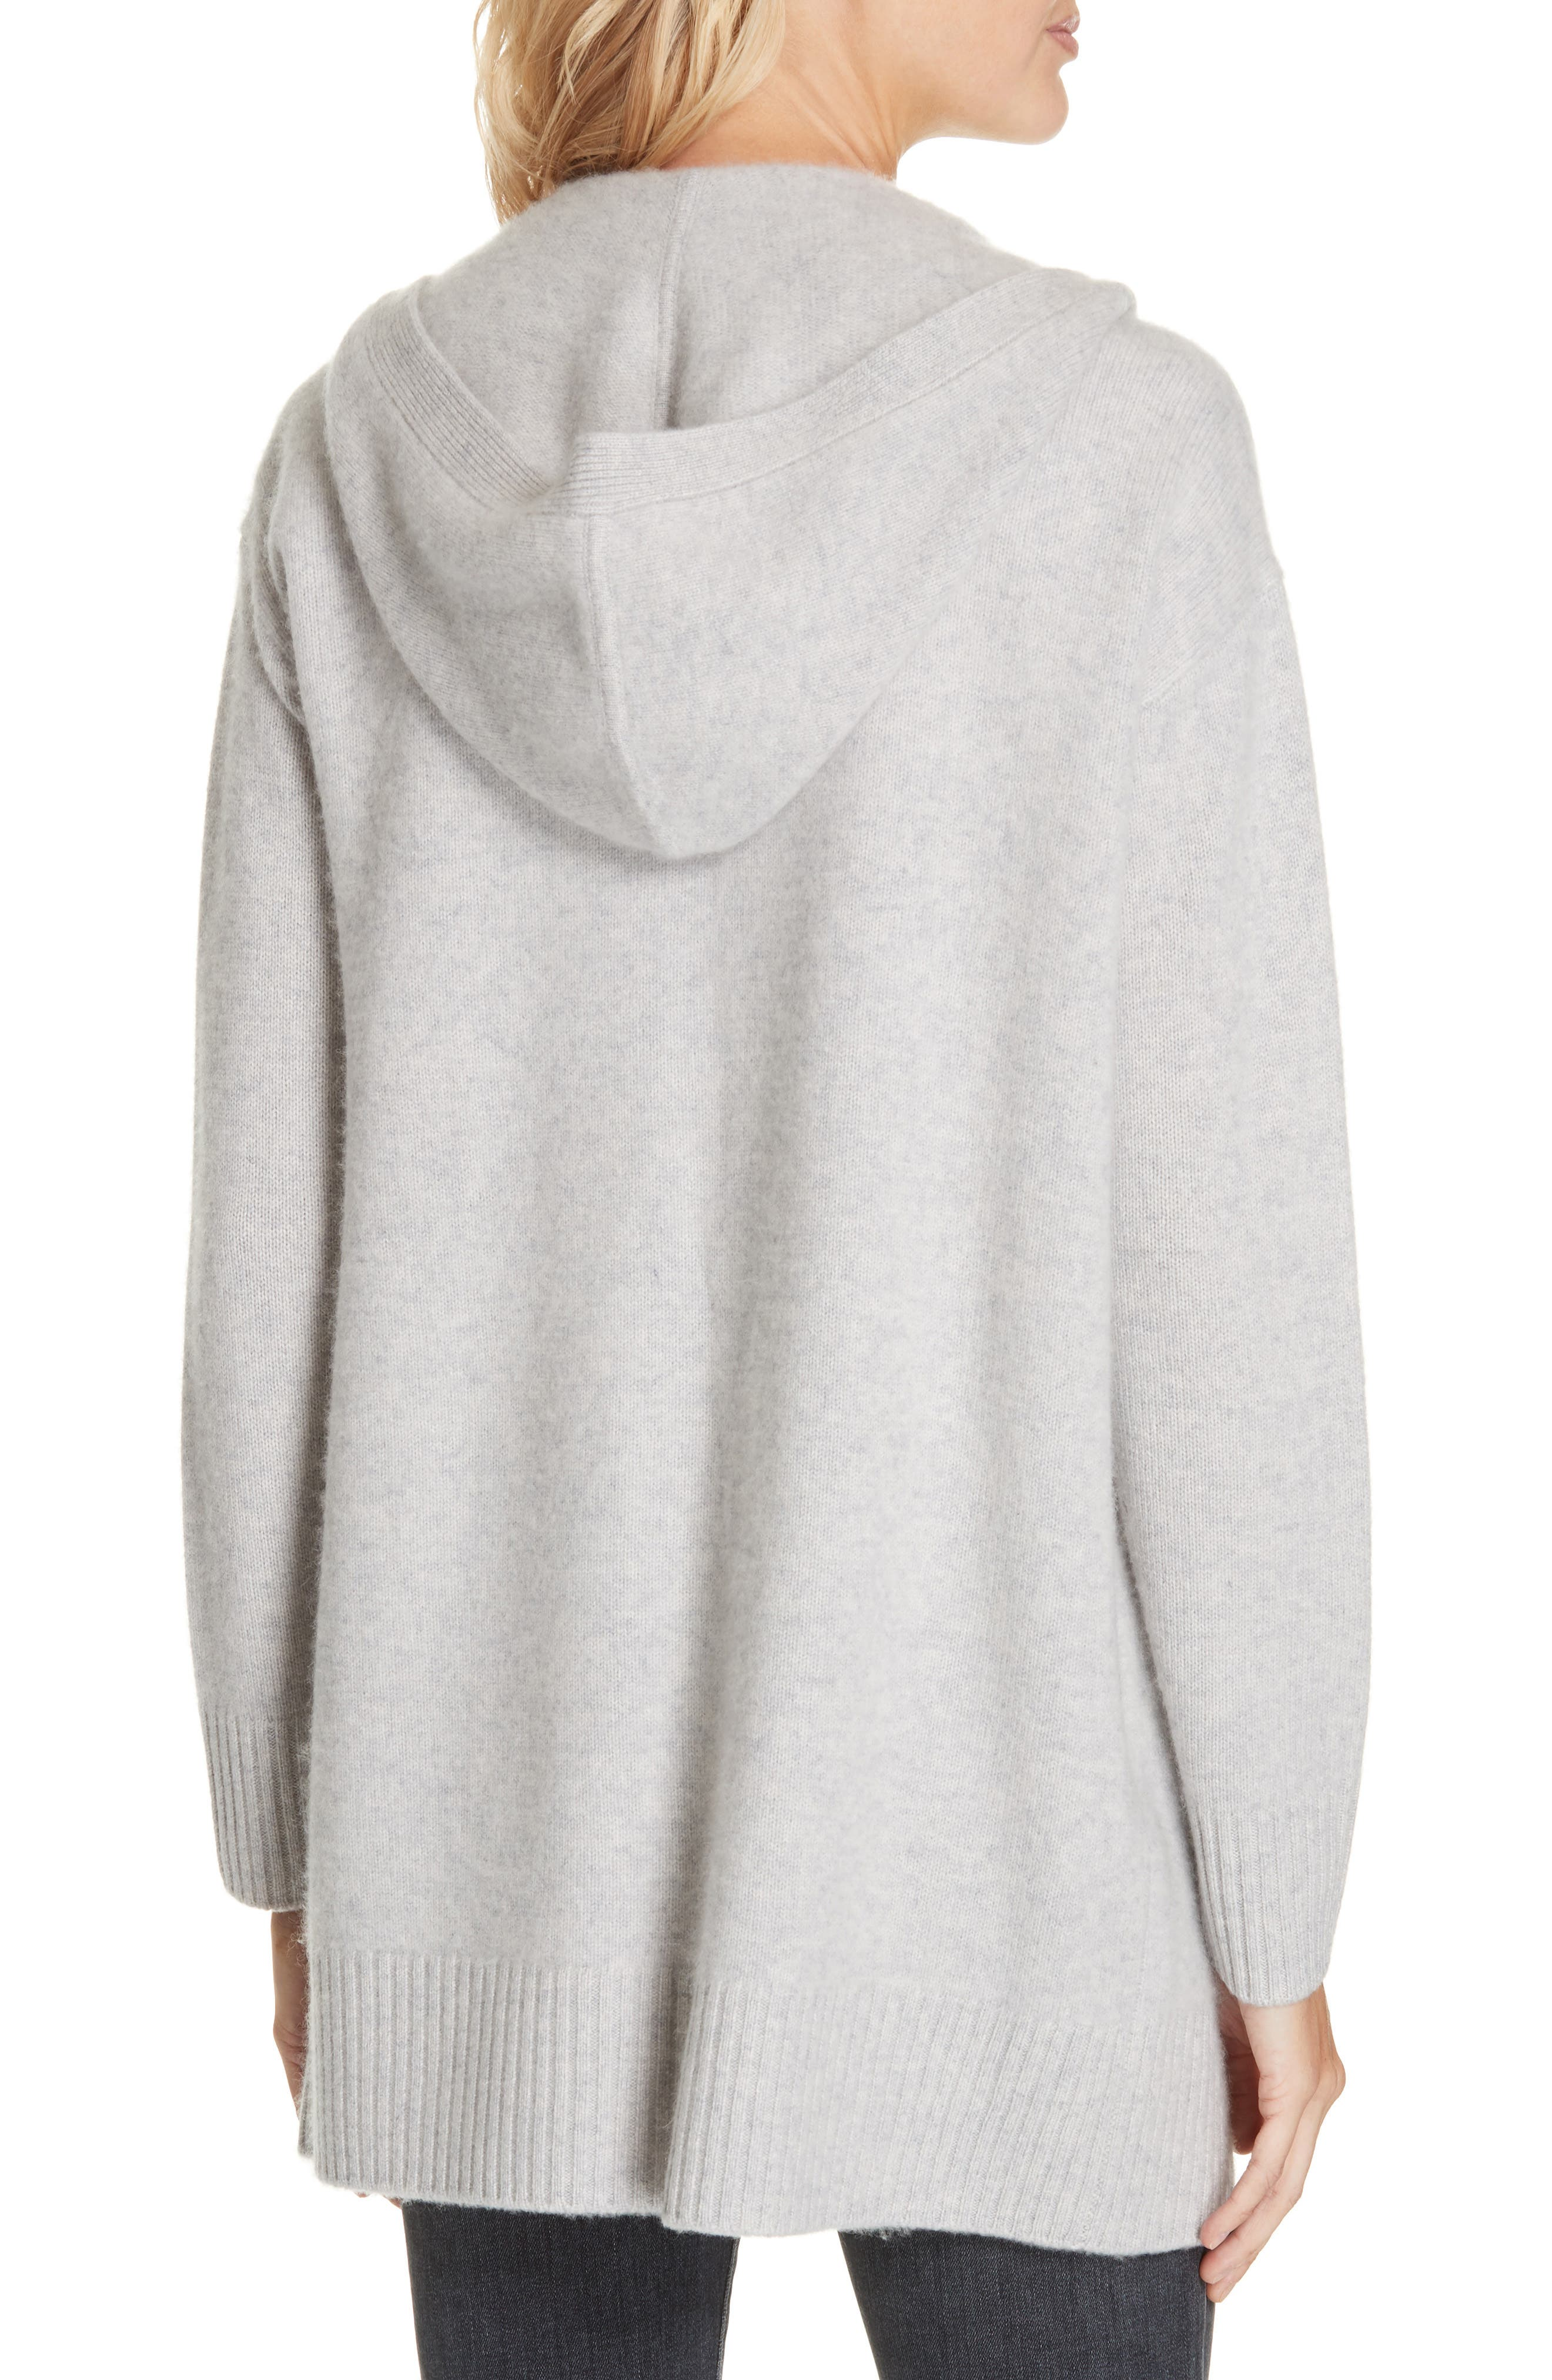 NORDSTROM SIGNATURE,                             Hooded Boiled Cashmere Cardigan,                             Alternate thumbnail 2, color,                             GREY CLAY HEATHER